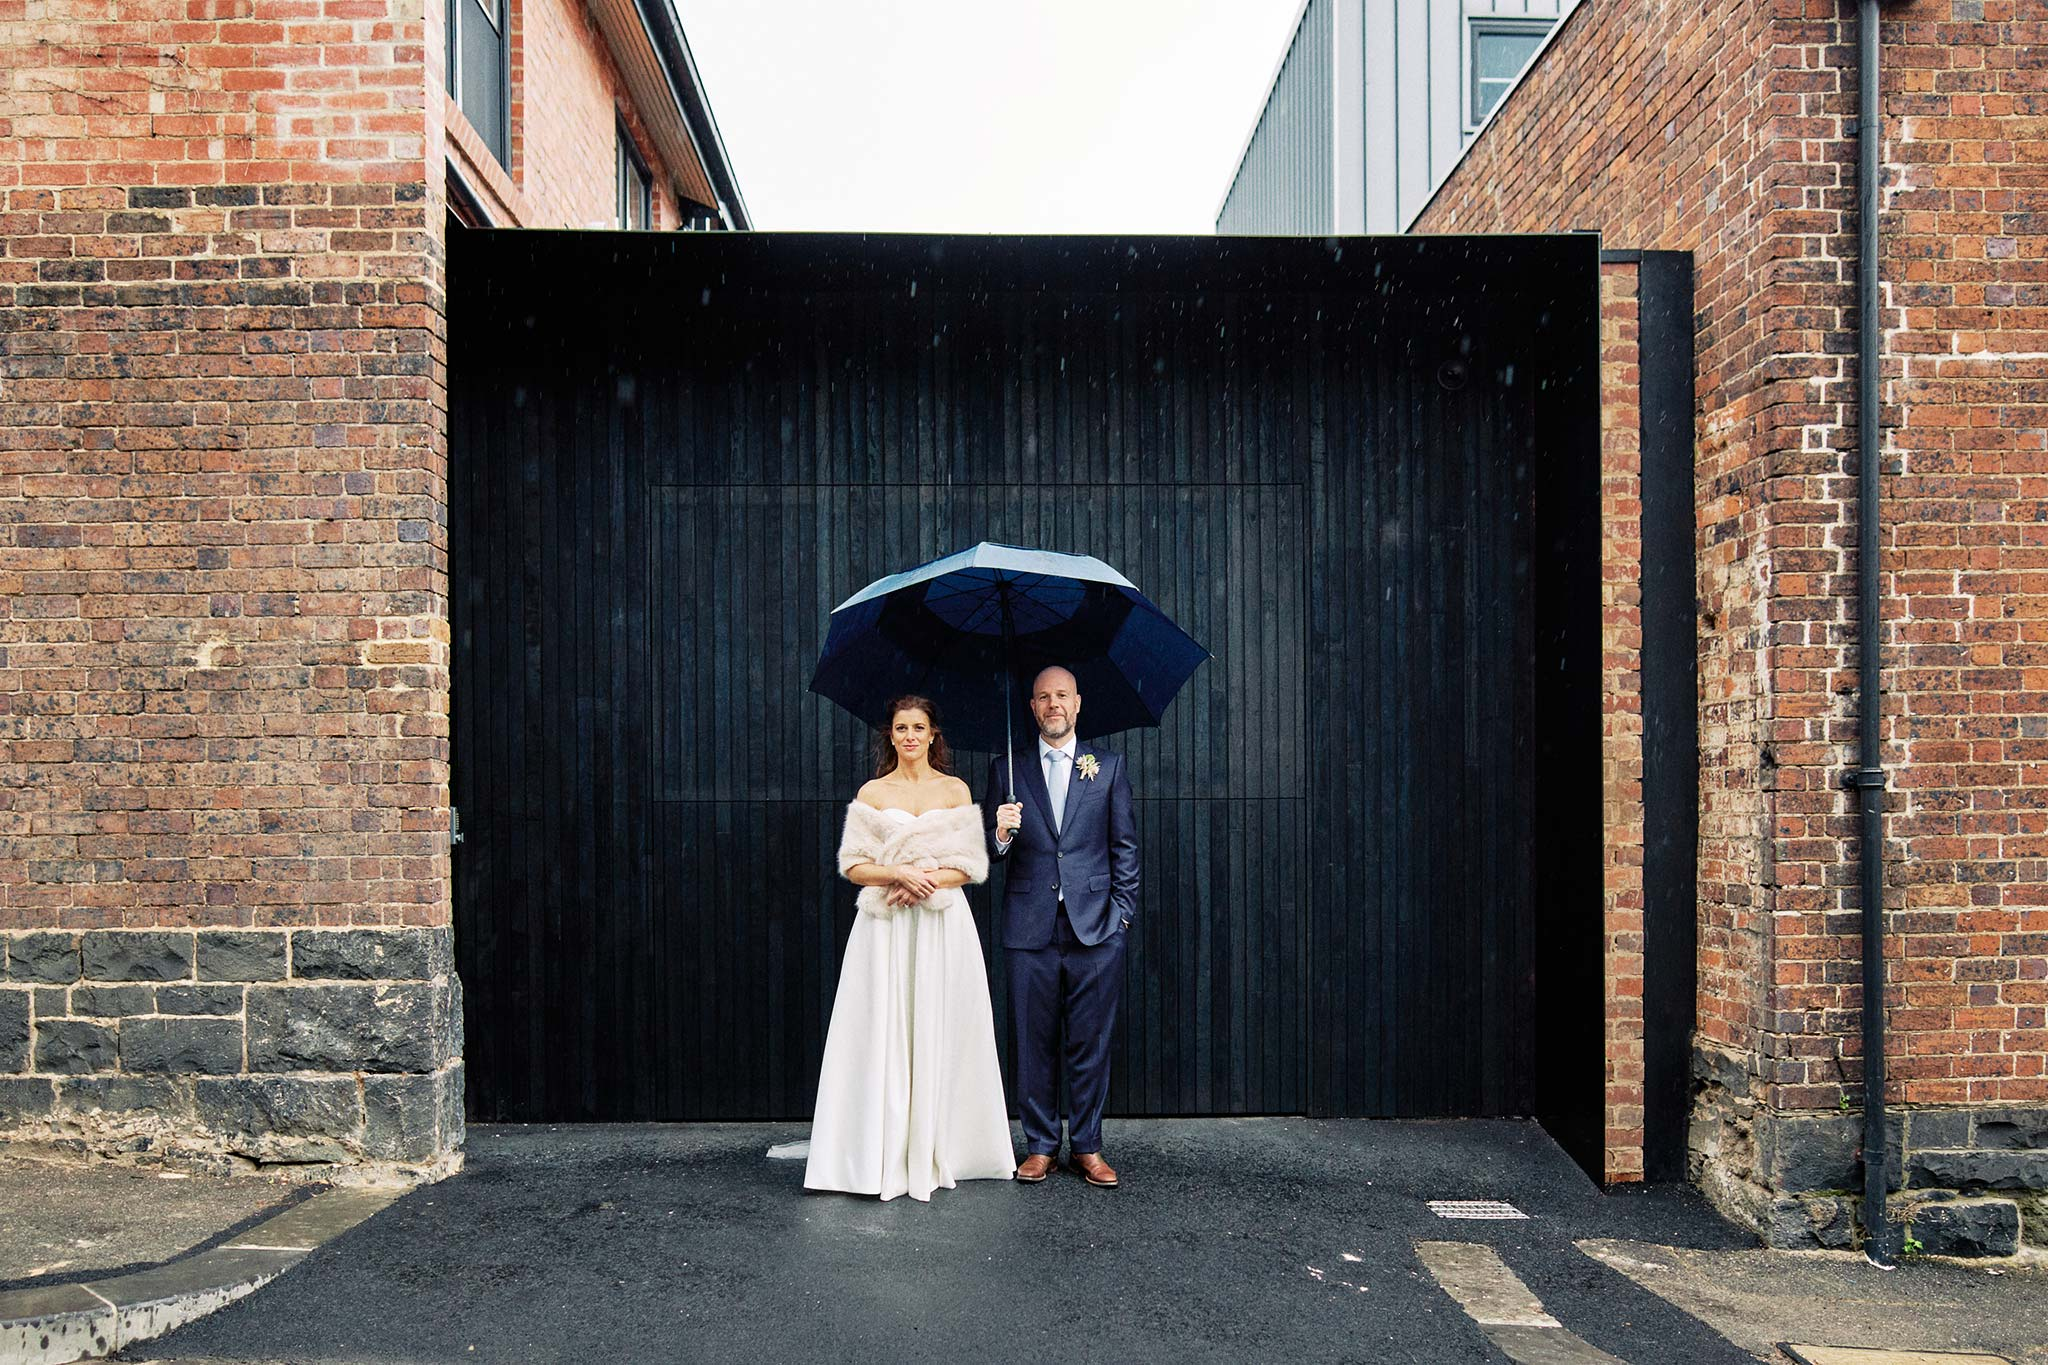 East Melbourne Wedding rain portrait bride groom umbrella